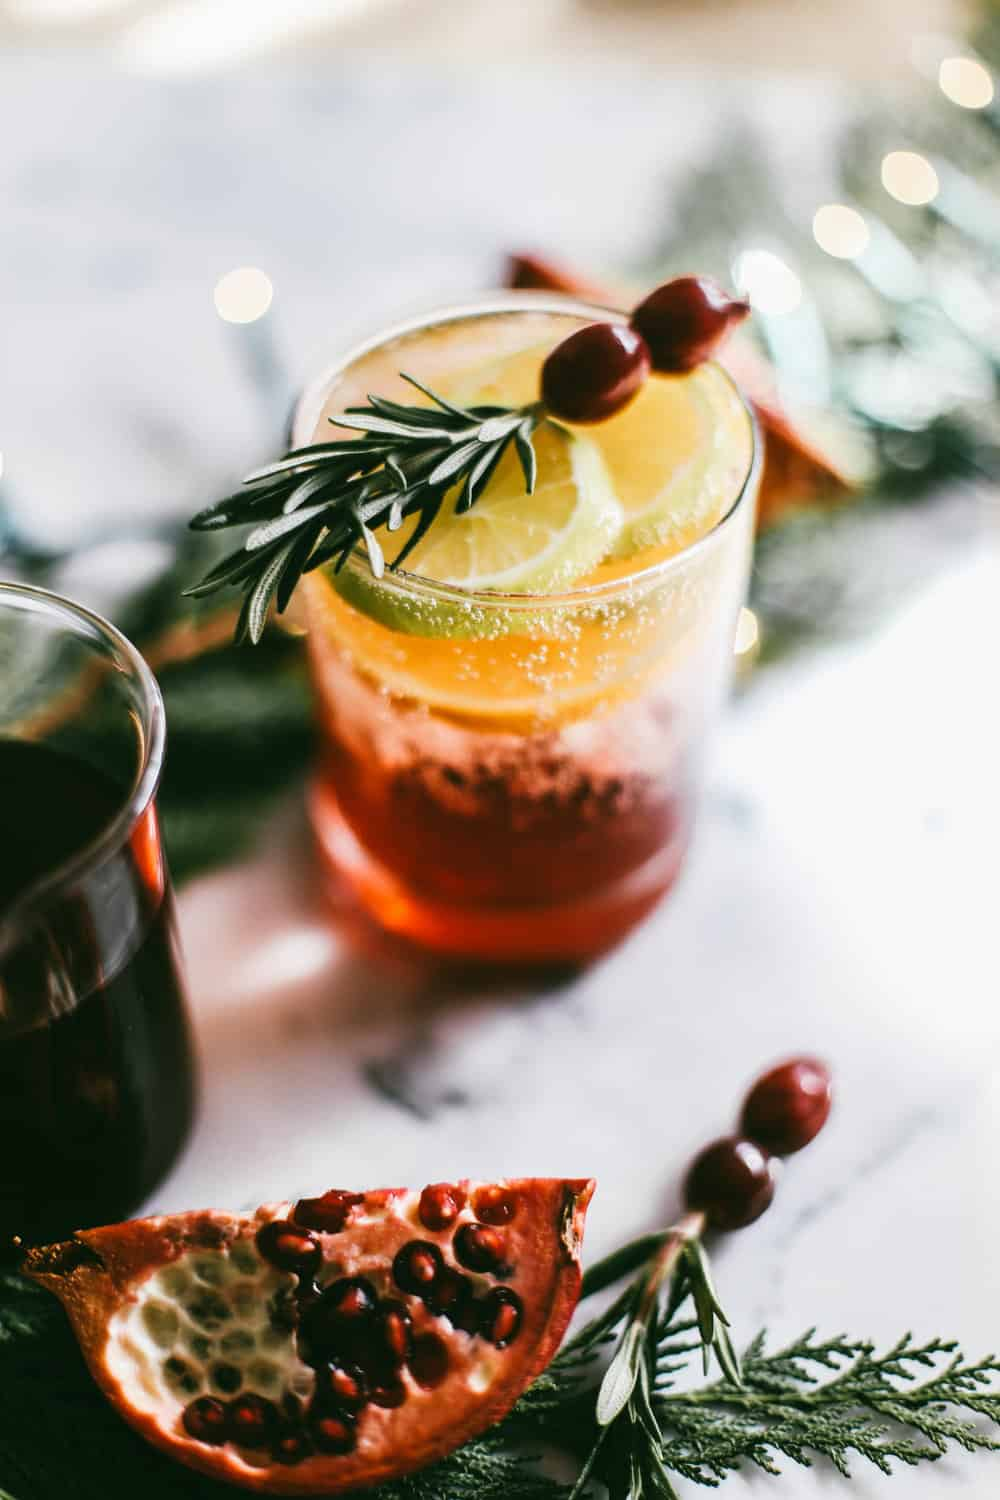 Low glass filled with pomegranate juice and champagne garnished with orange slices, rosemary and cranberries.